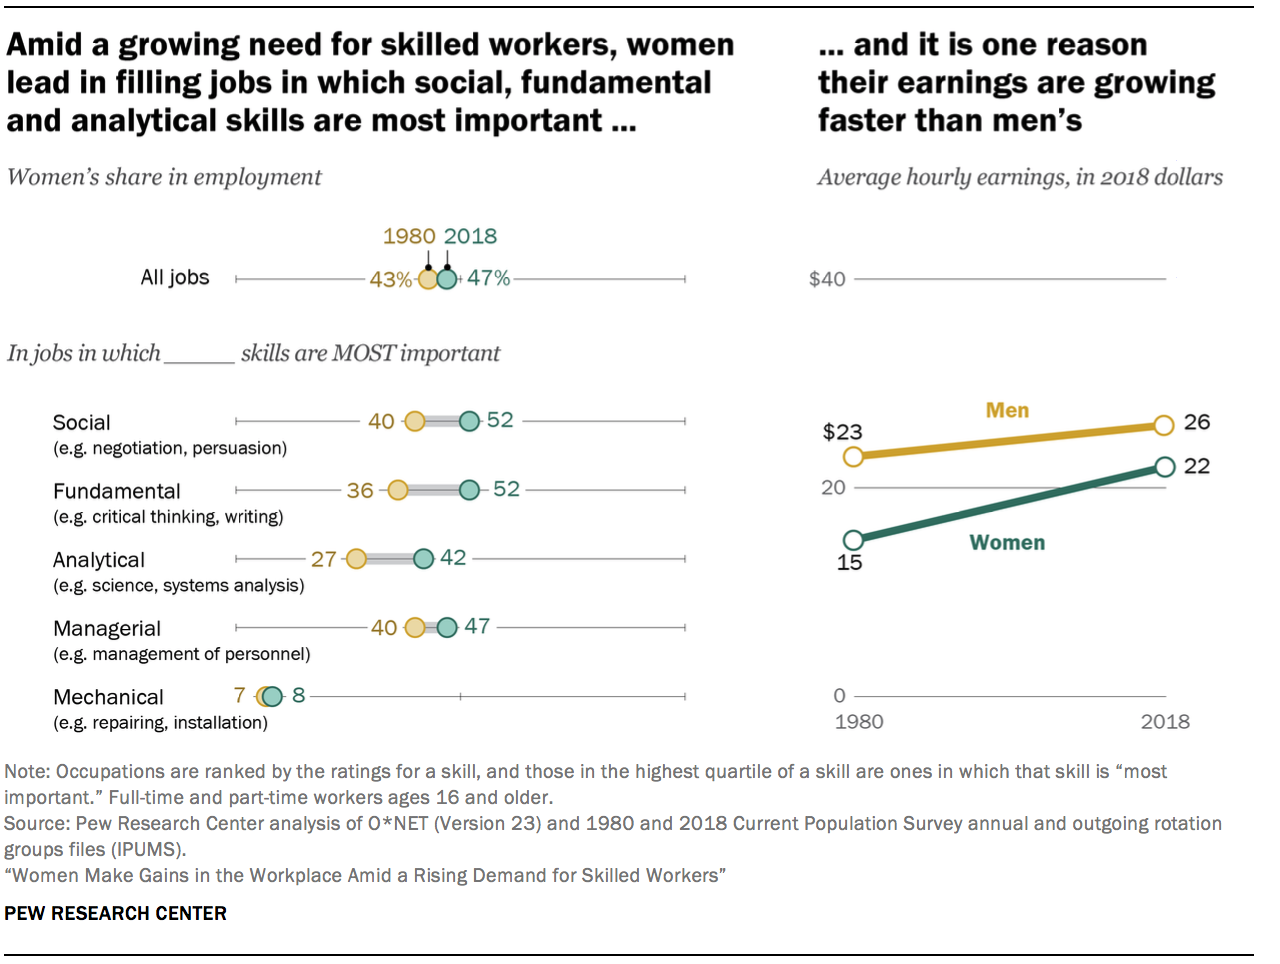 Amid a growing need for skilled workers, women lead in filling jobs in which social, fundamental and analytical skills are most important